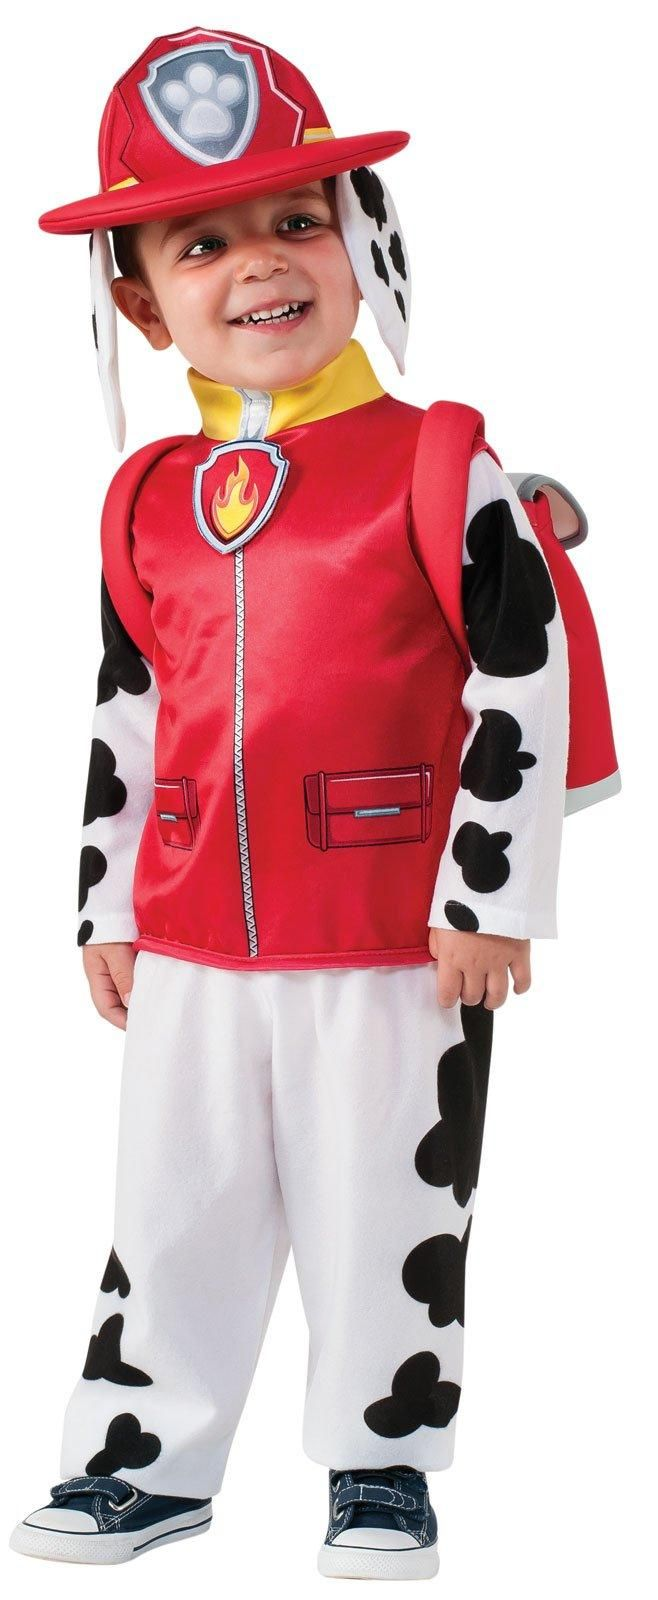 Paw Patrol - Marshall Toddler/Child Costume from Buycostumes.com